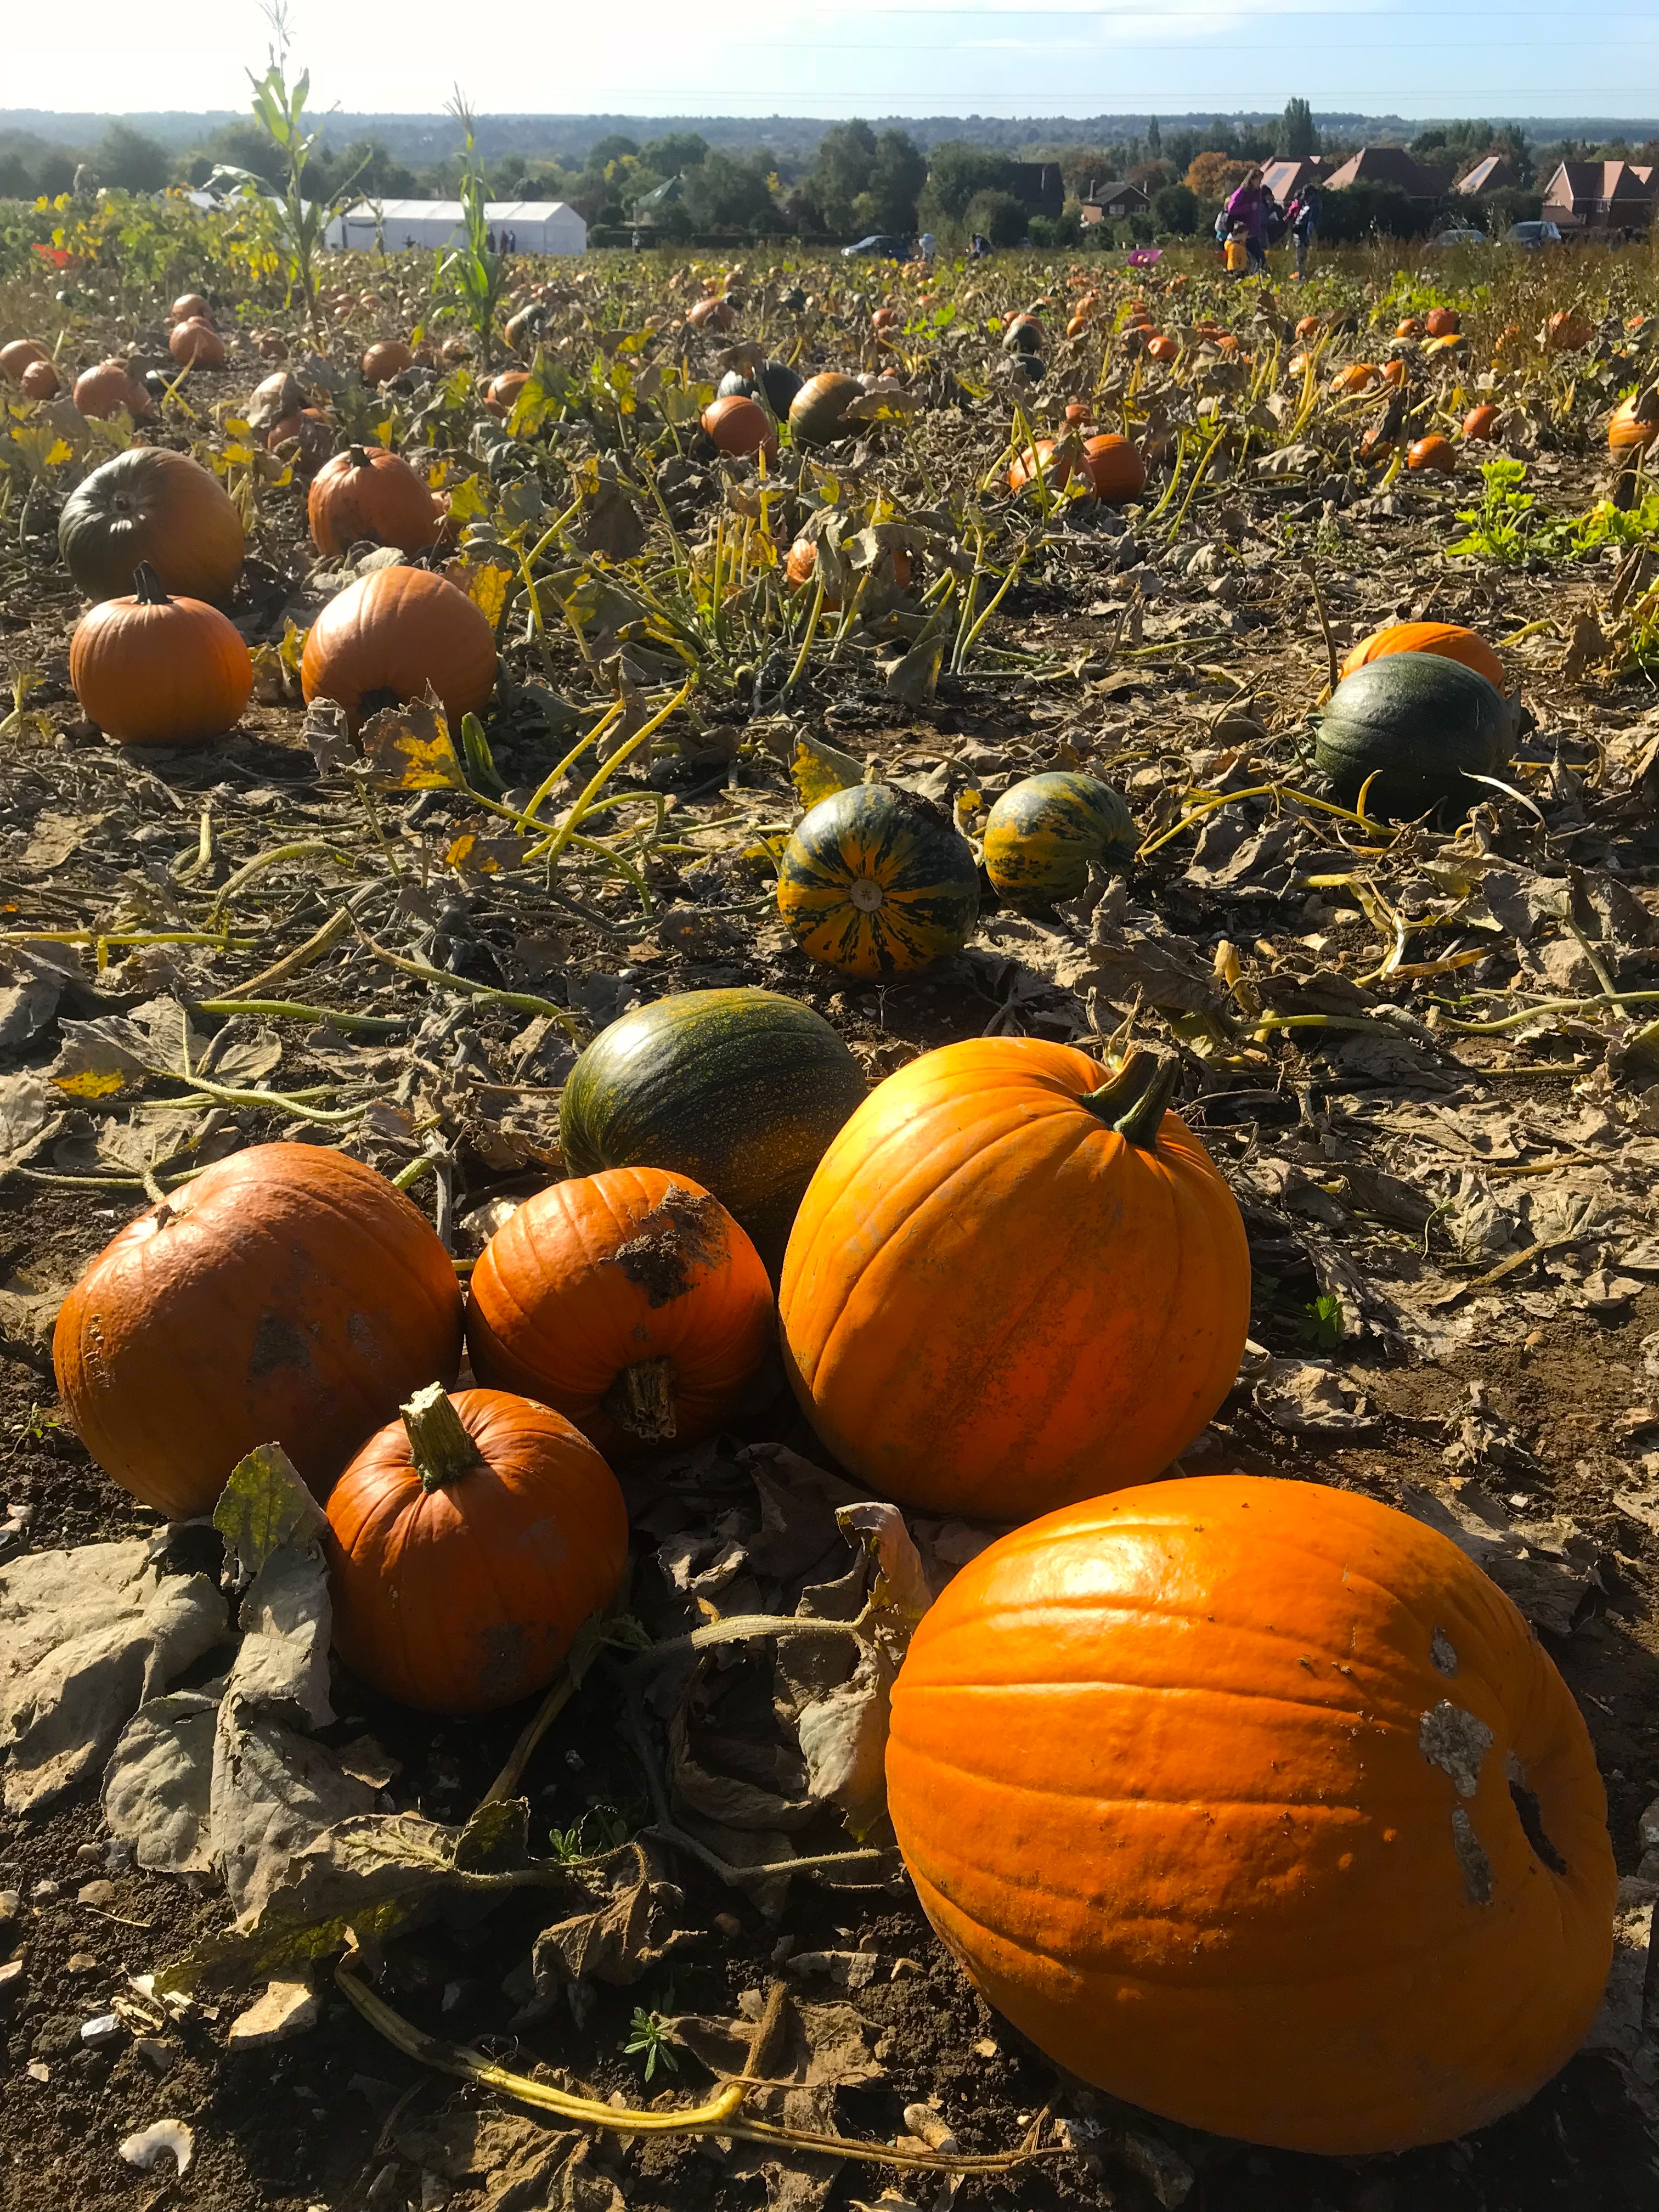 Pumpkin Picking at Pumpkin Moon in Maidstone, Kent